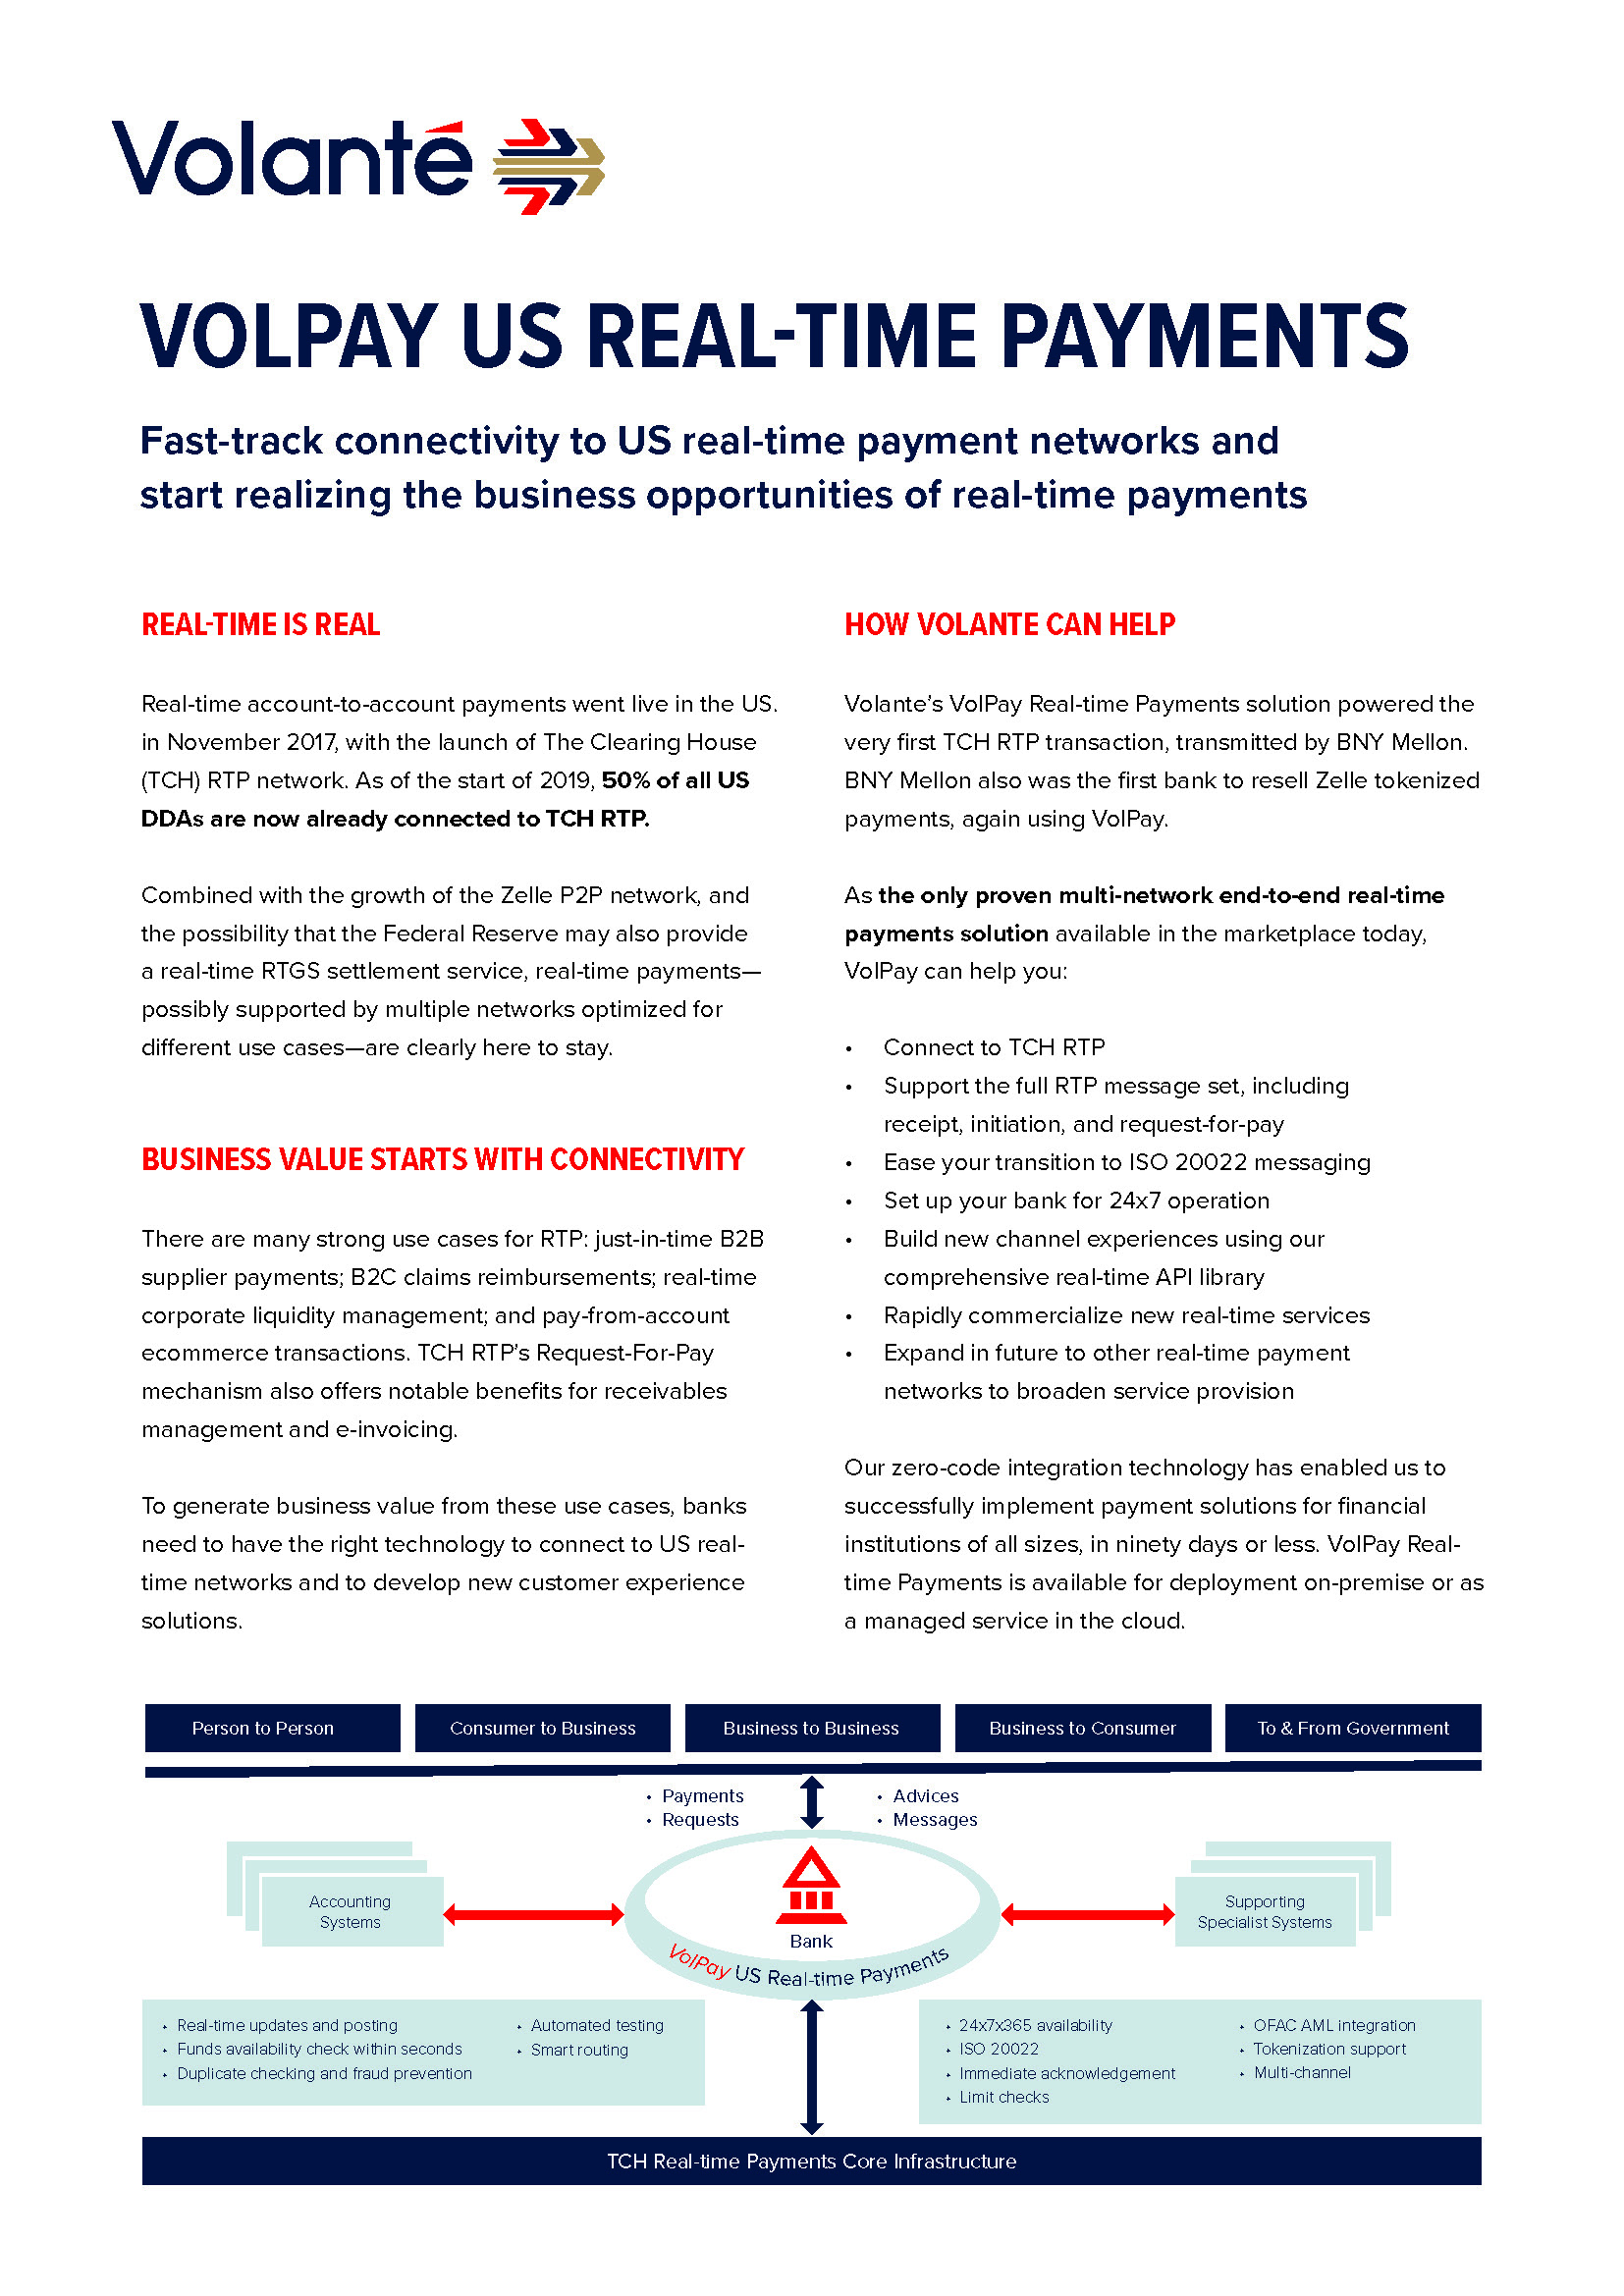 VolPay US Real-time Payments